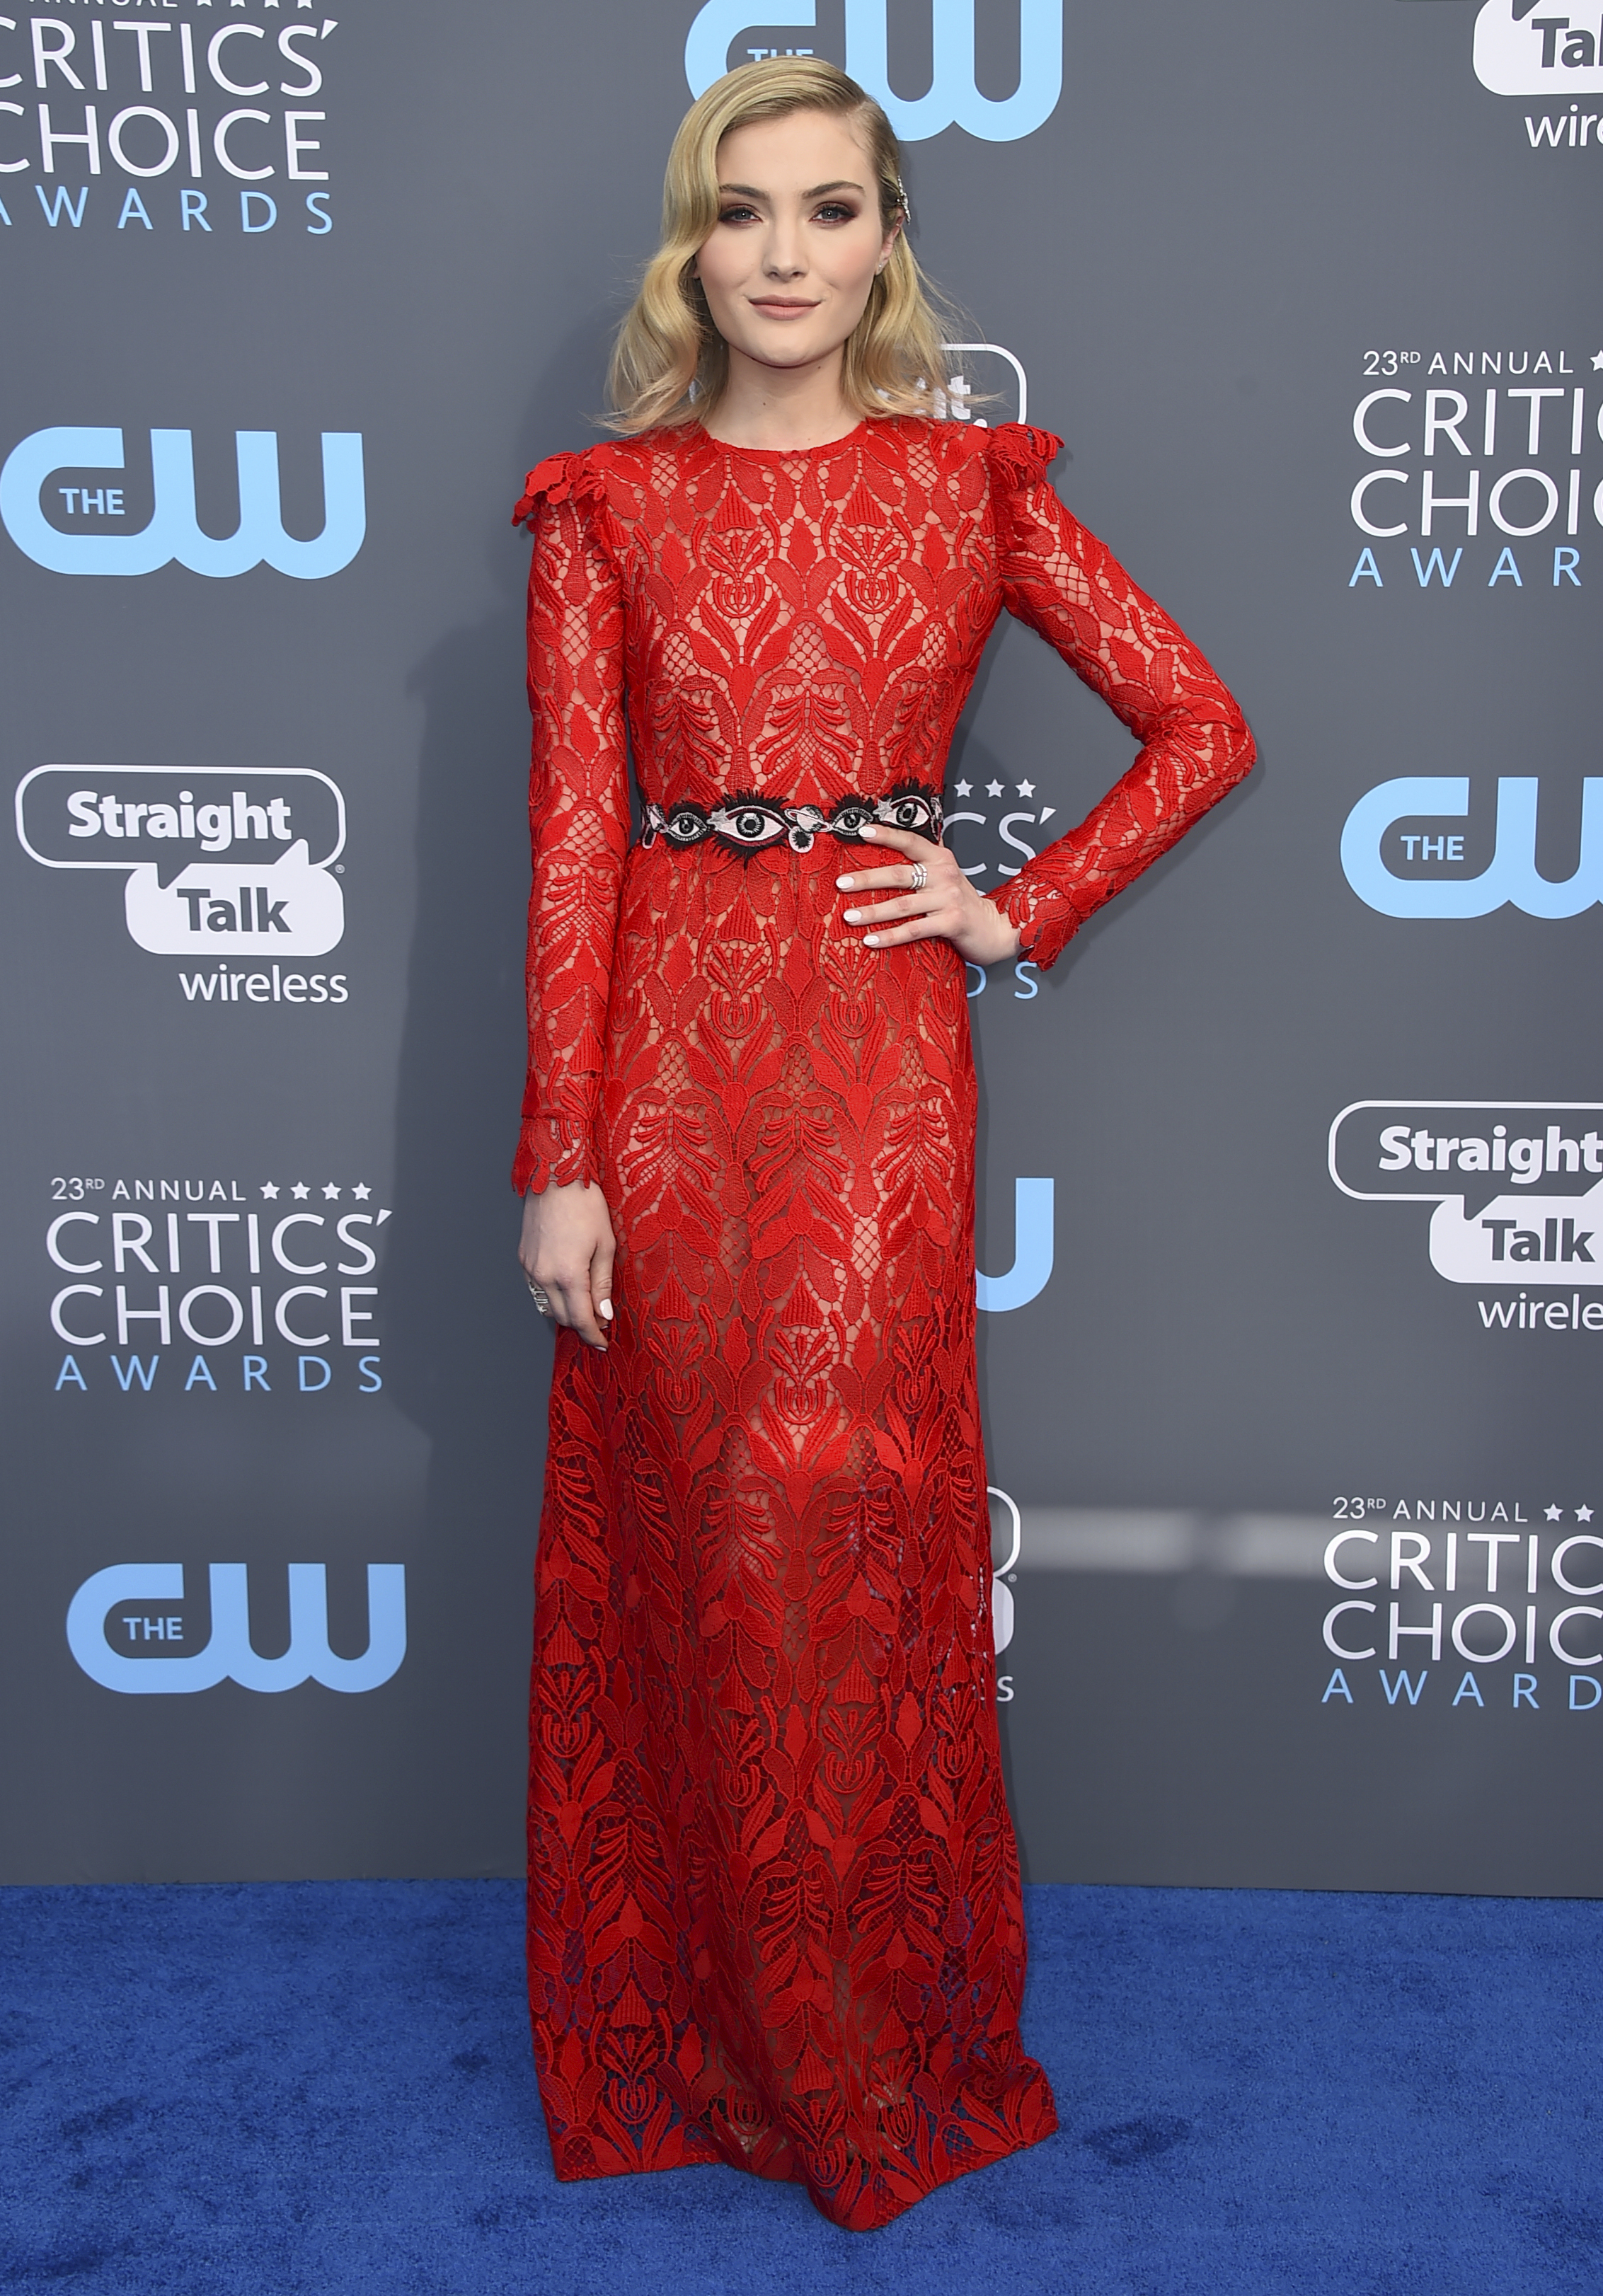 <div class='meta'><div class='origin-logo' data-origin='AP'></div><span class='caption-text' data-credit='Jordan Strauss/Invision/AP'>Skyler Samuels arrives at the 23rd annual Critics' Choice Awards at the Barker Hangar on Thursday, Jan. 11, 2018, in Santa Monica, Calif.</span></div>